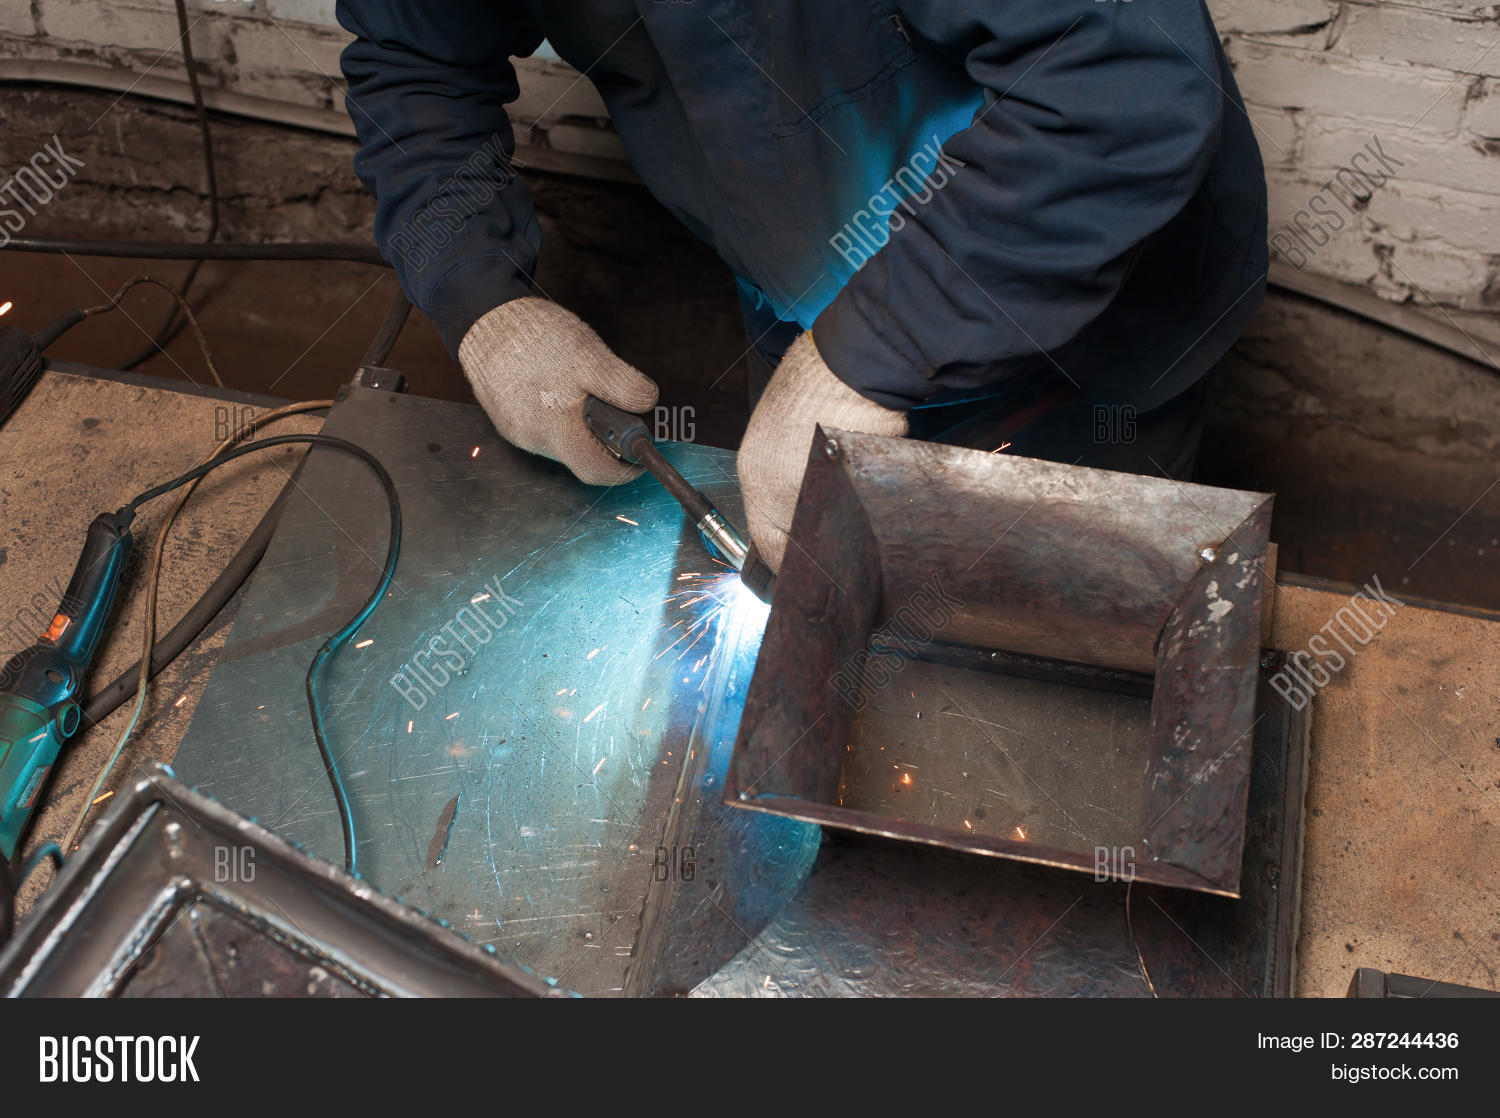 blacksmith,bracing,cap,craft,craftsman,craftsmanship,cutting,dirt,diy,electric,engineer,equipment,expertise,factory,farrier,gloves,grey,hand,handmade,handwork,heat,hold,hotbed,industrial,industry,iron,job,make,making,man,manufacturing,mechanic,metal,occupation,ornament,parts,product,professional,skill,solder,soldering,sparks,stand,tools,white,worker,working,workshop